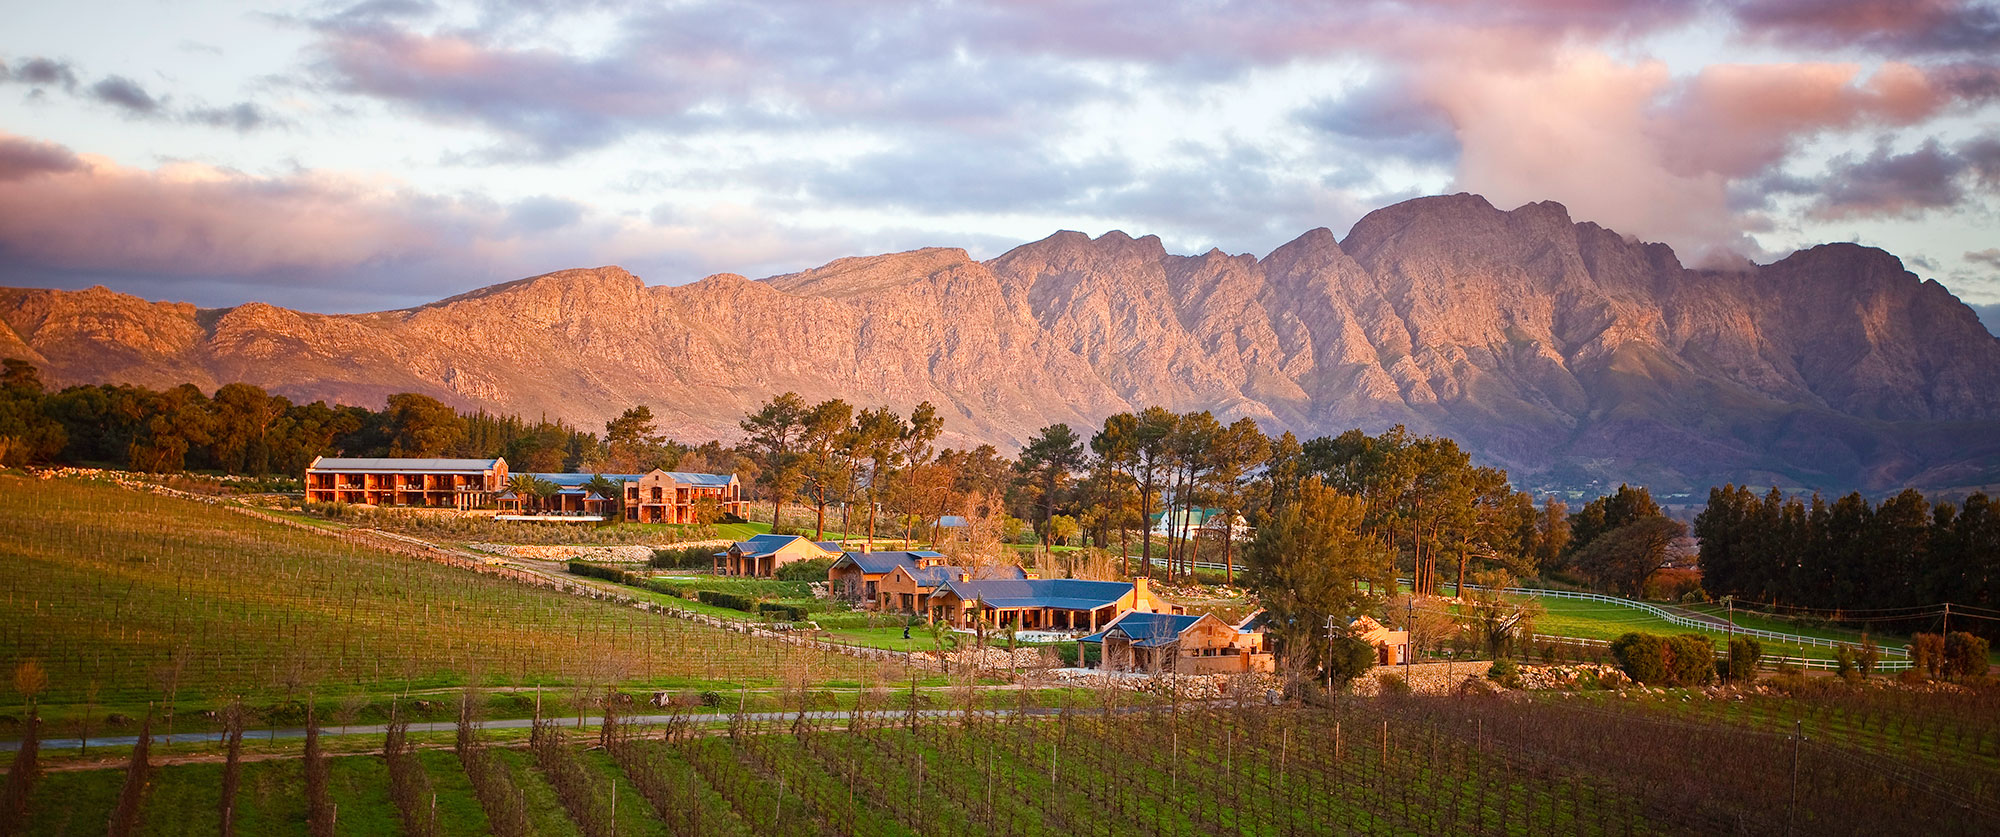 Luxury South Africa Travel Packages - Franschhoek Valley, Cape Winelands, South Africa